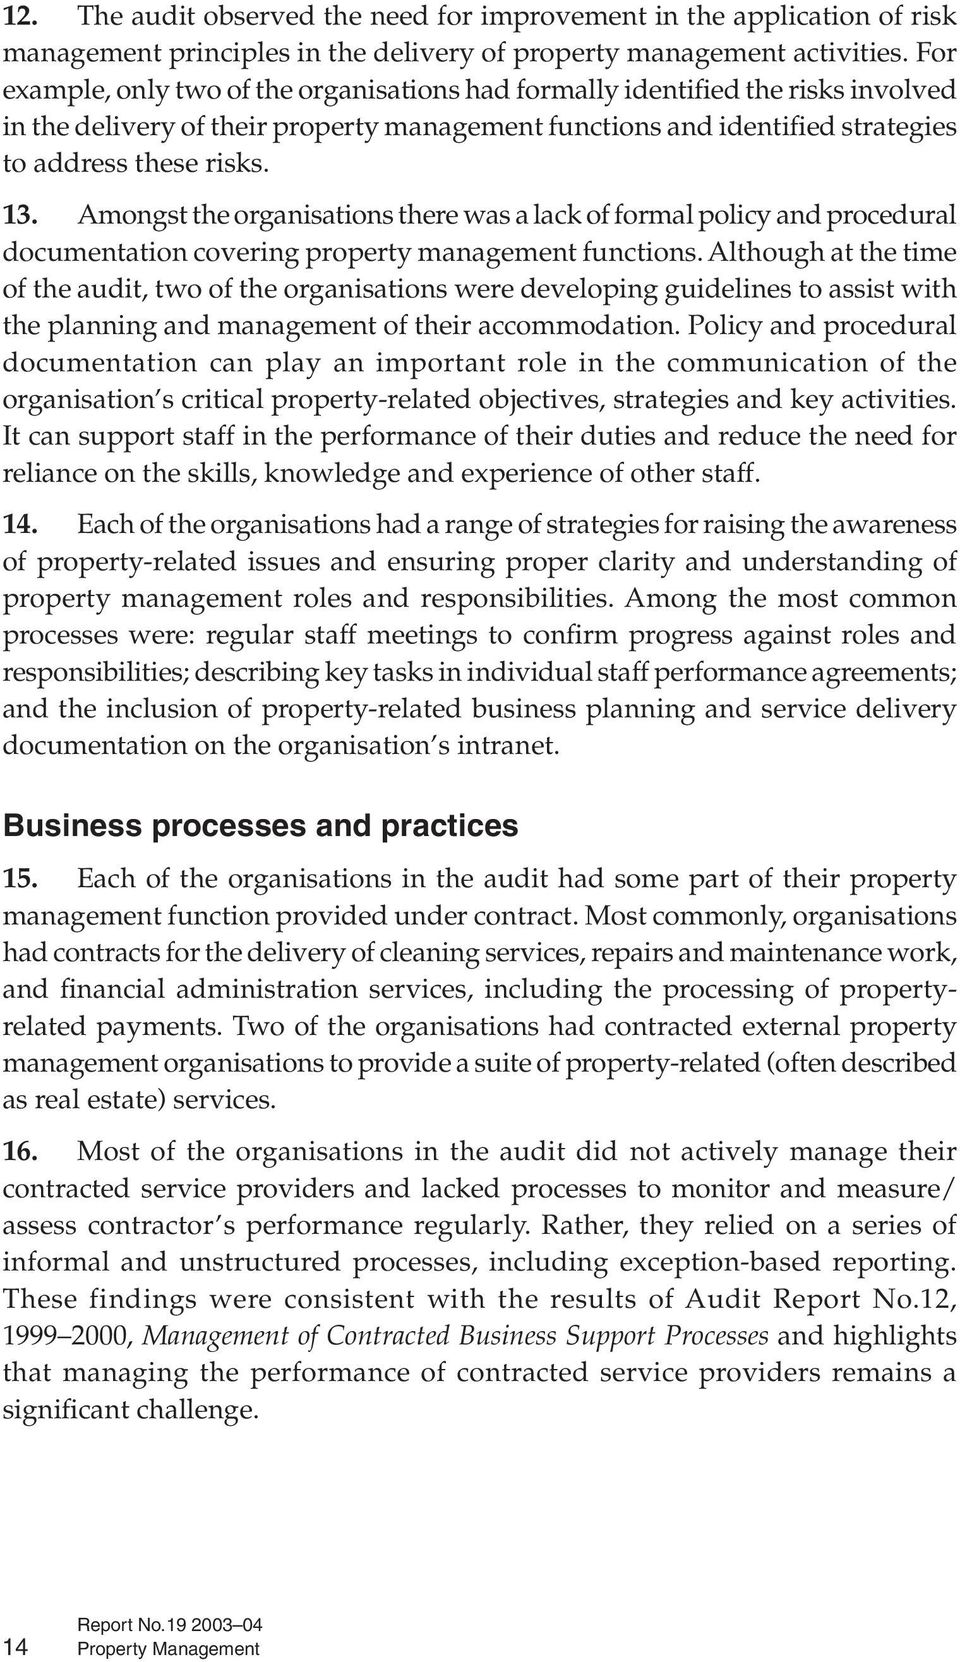 Amongst the organisations there was a lack of formal policy and procedural documentation covering property management functions.